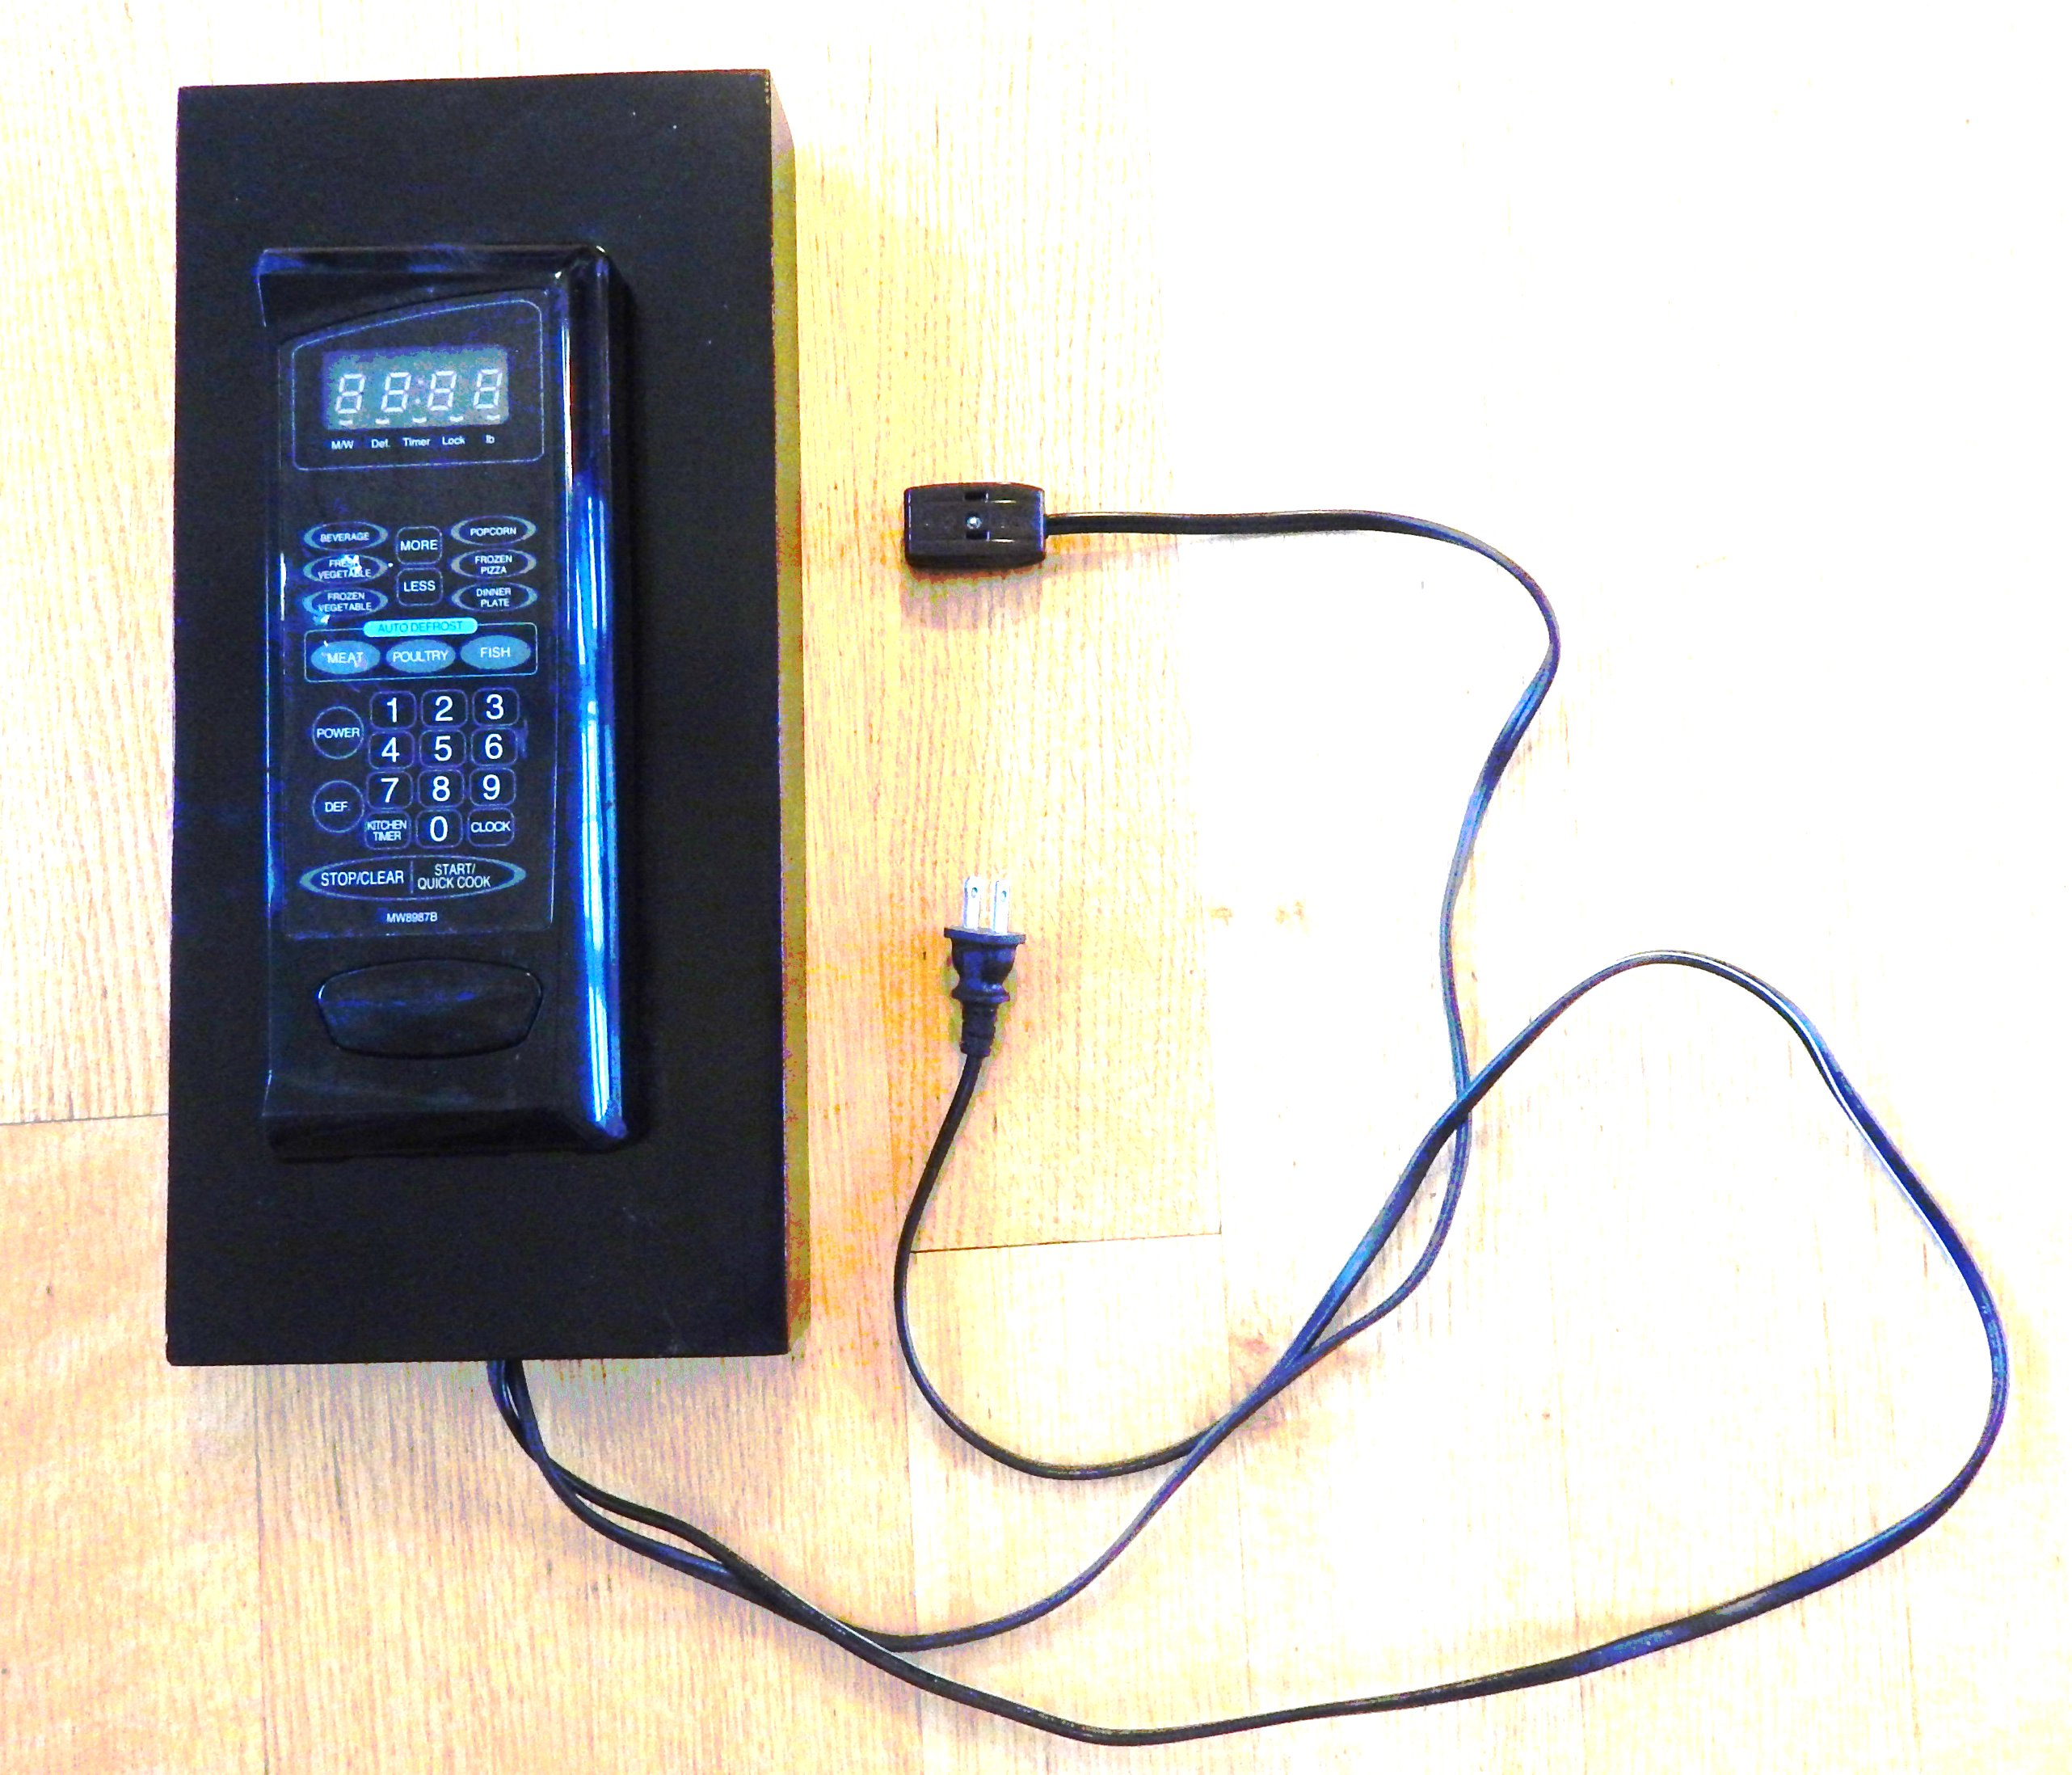 NanoWave - Recycling old Microwave Oven as Clock / Timer